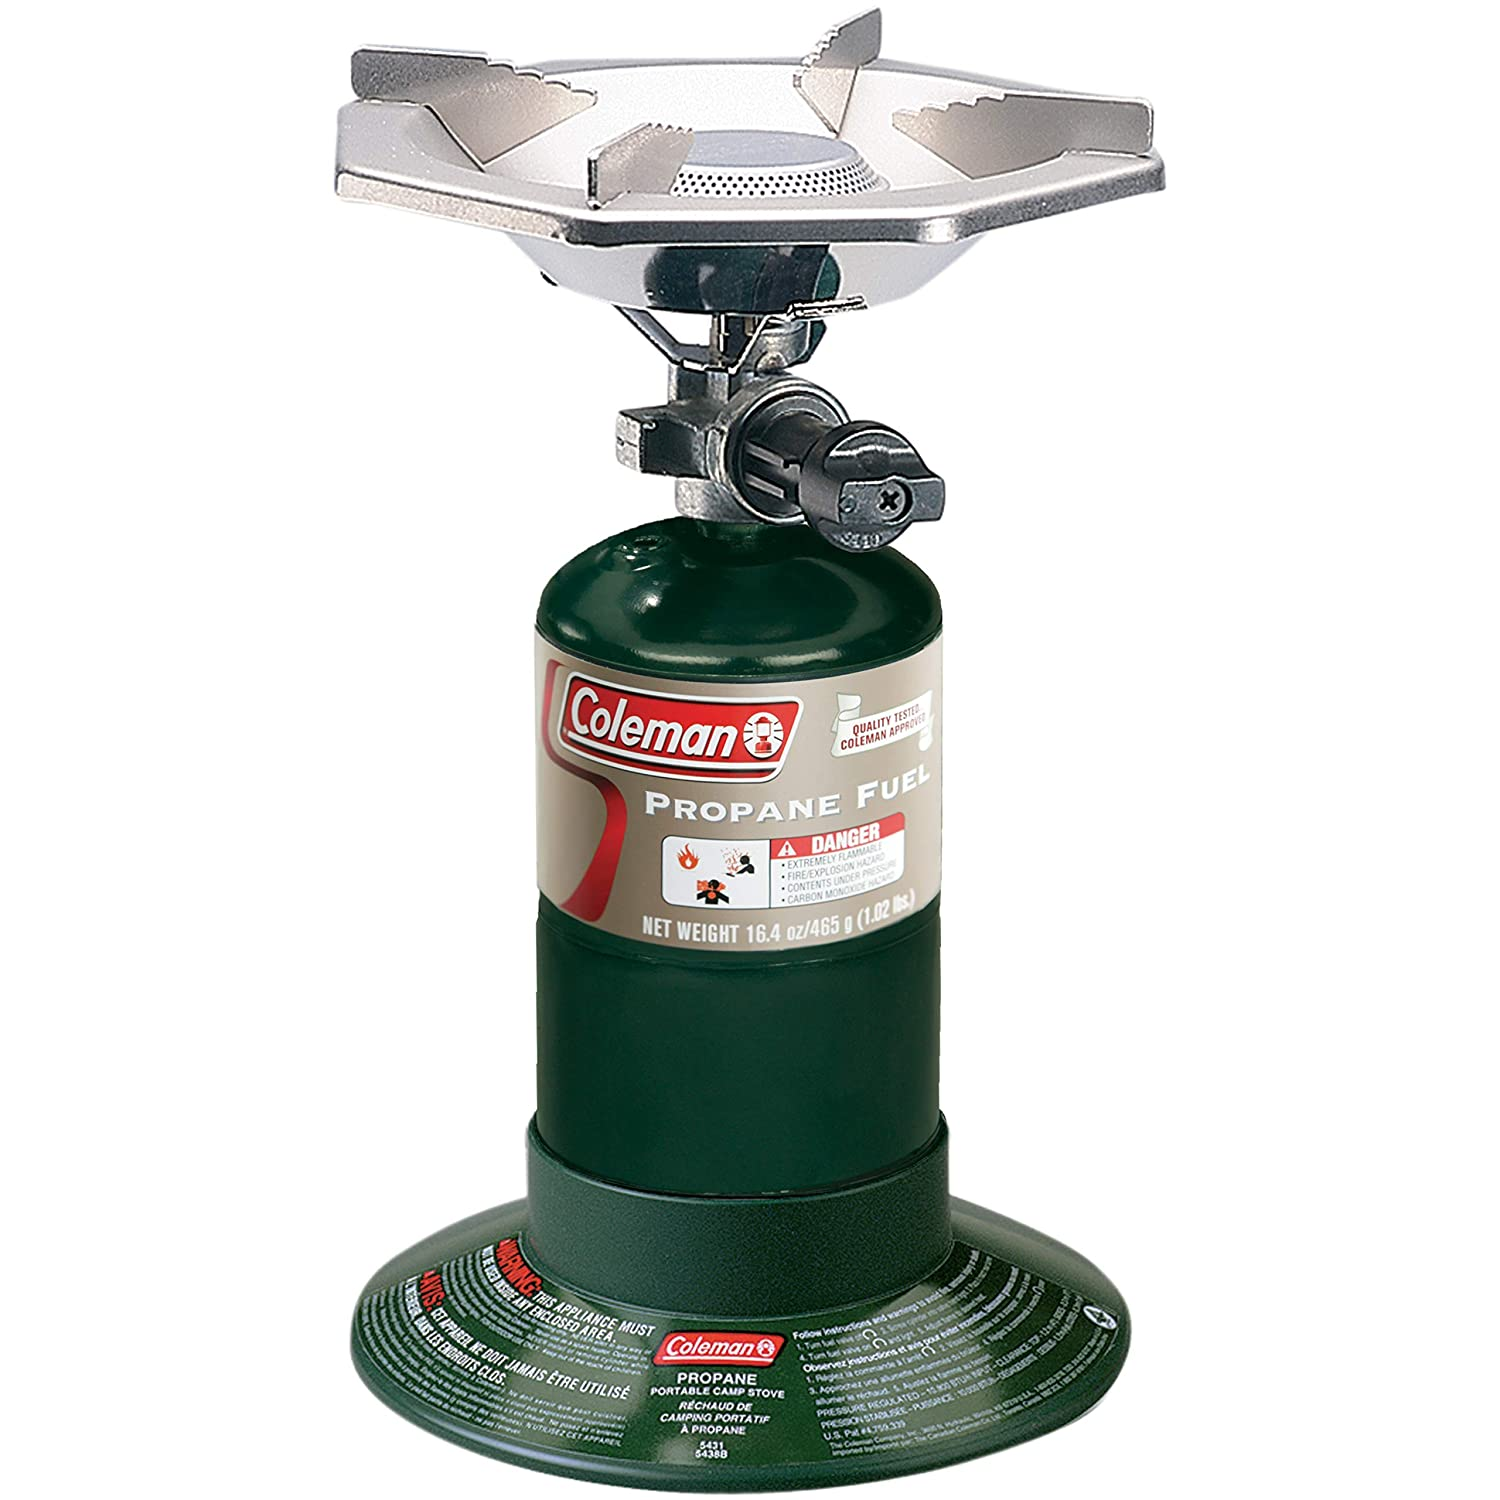 Coleman Bottle Top Propane Stove,Green,6.62in H x 7.81in W x 7.75in L Renewed